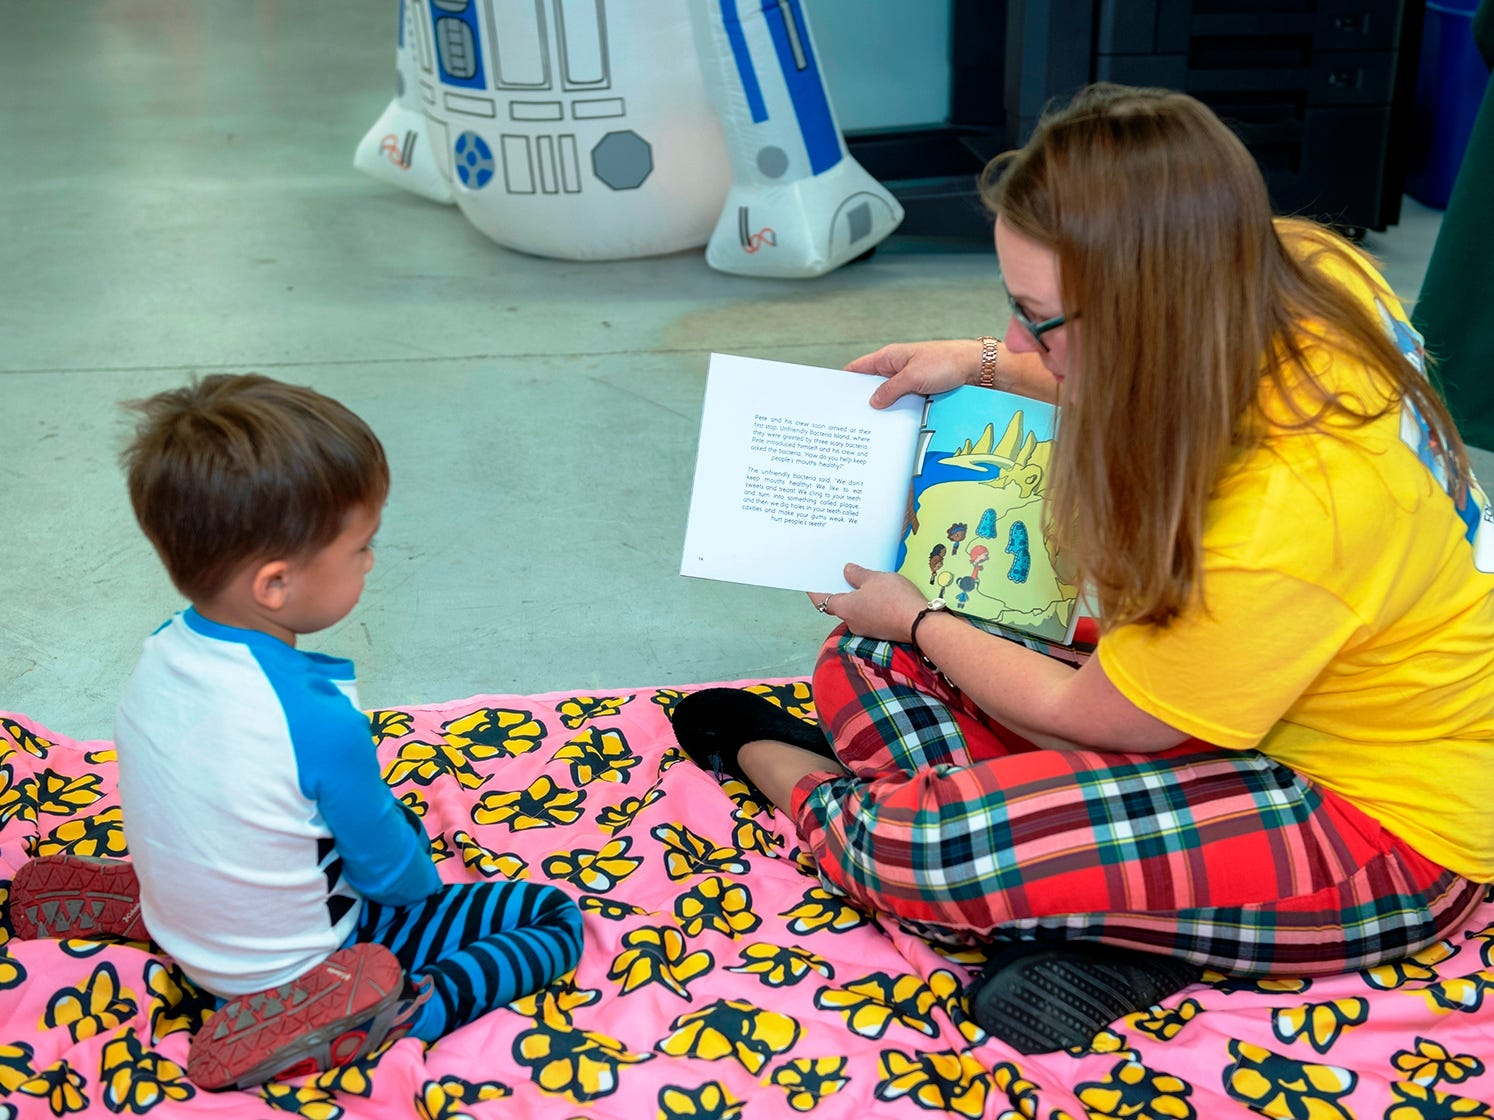 Guest reader Lisa Soesbe, author of children's books, reads to a child at the Pajama Jam.